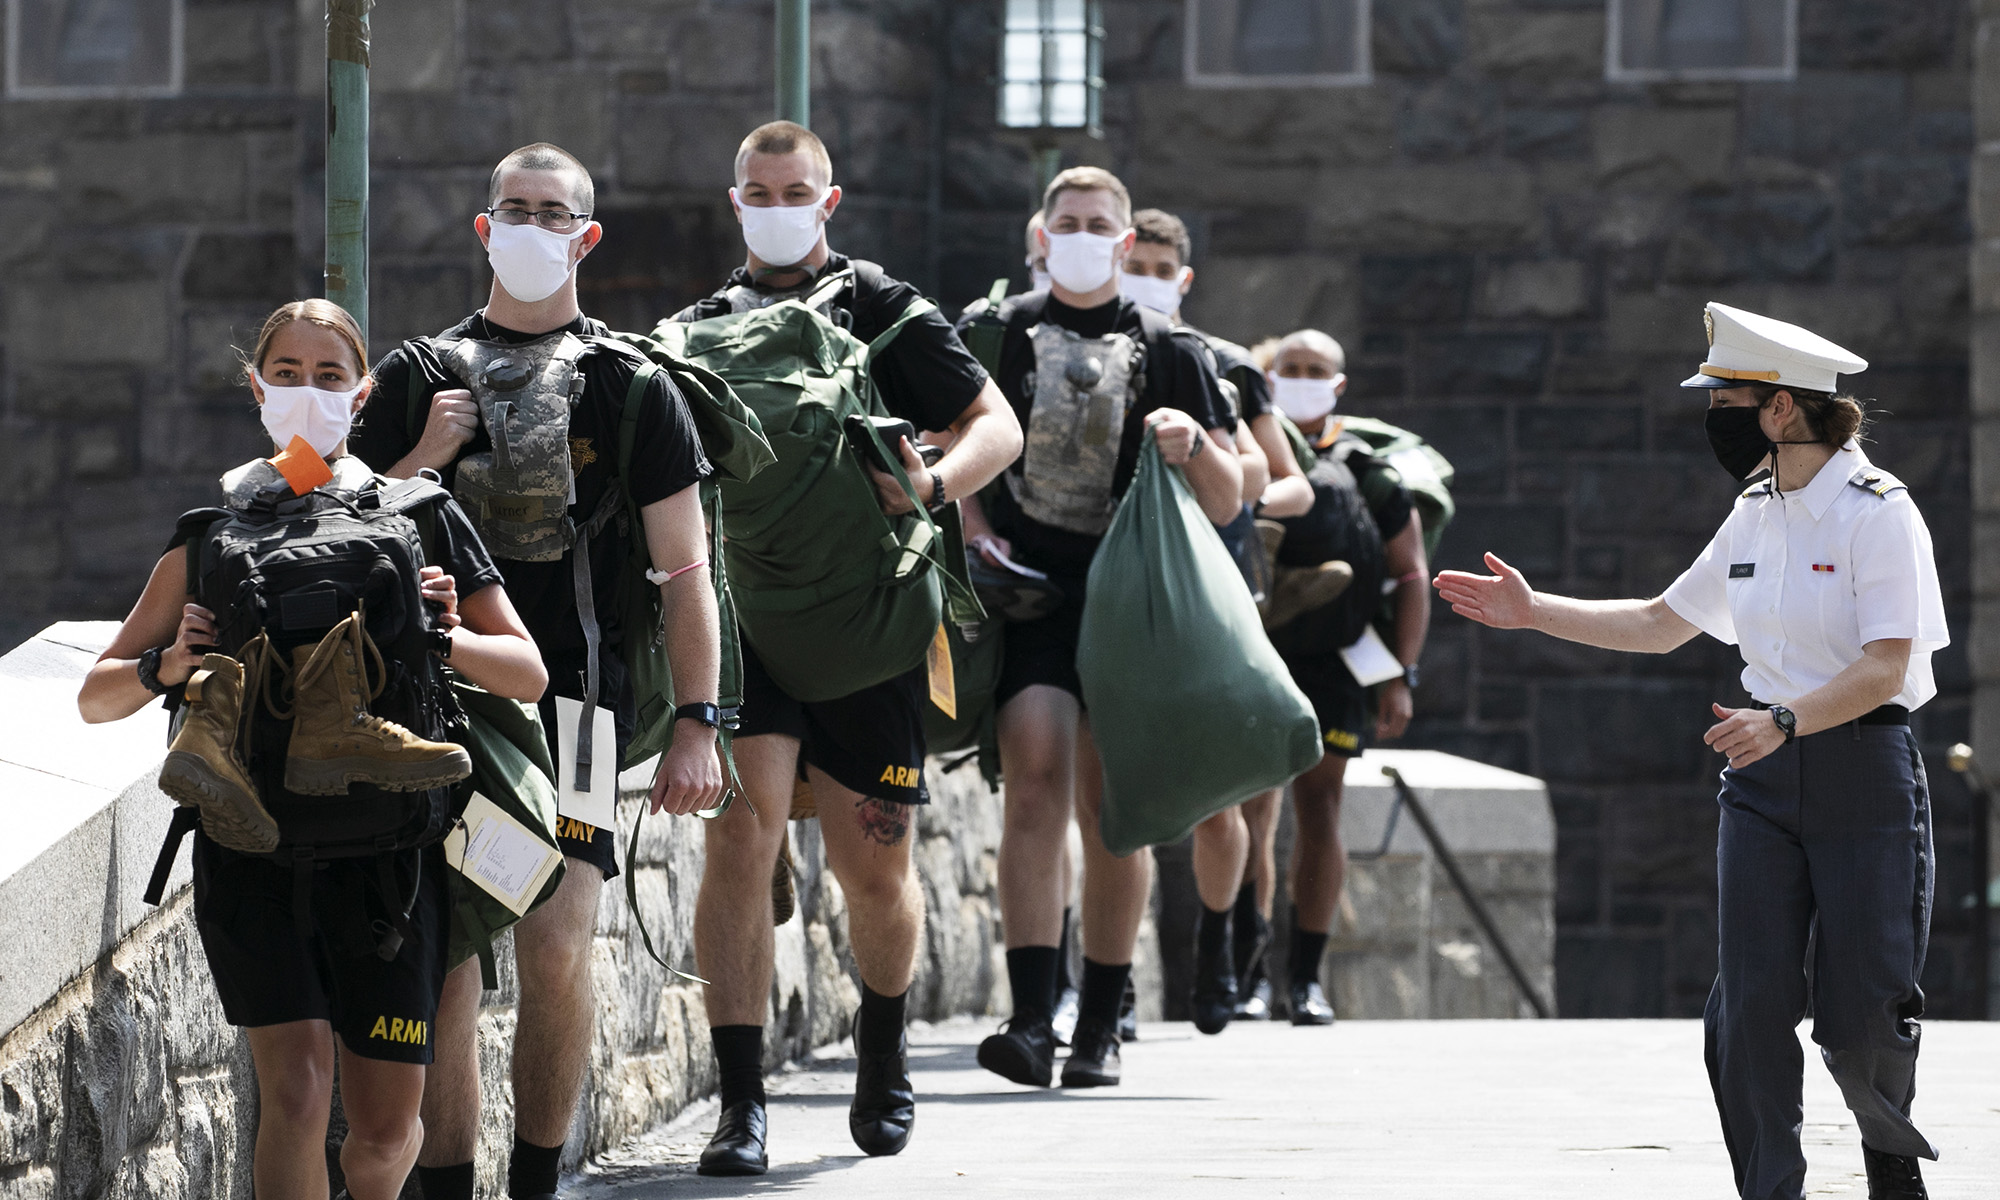 A West Point cadet, right, leads a formation of new cadets on July 13, 2020, at the U.S. Military Academy in West Point, N.Y. The Army is welcoming more than 1,200 candidates from every state. Candidates will be COVID-19 tested immediately upon arrival, wear masks, and practice social distancing. (Mark Lennihan/AP)